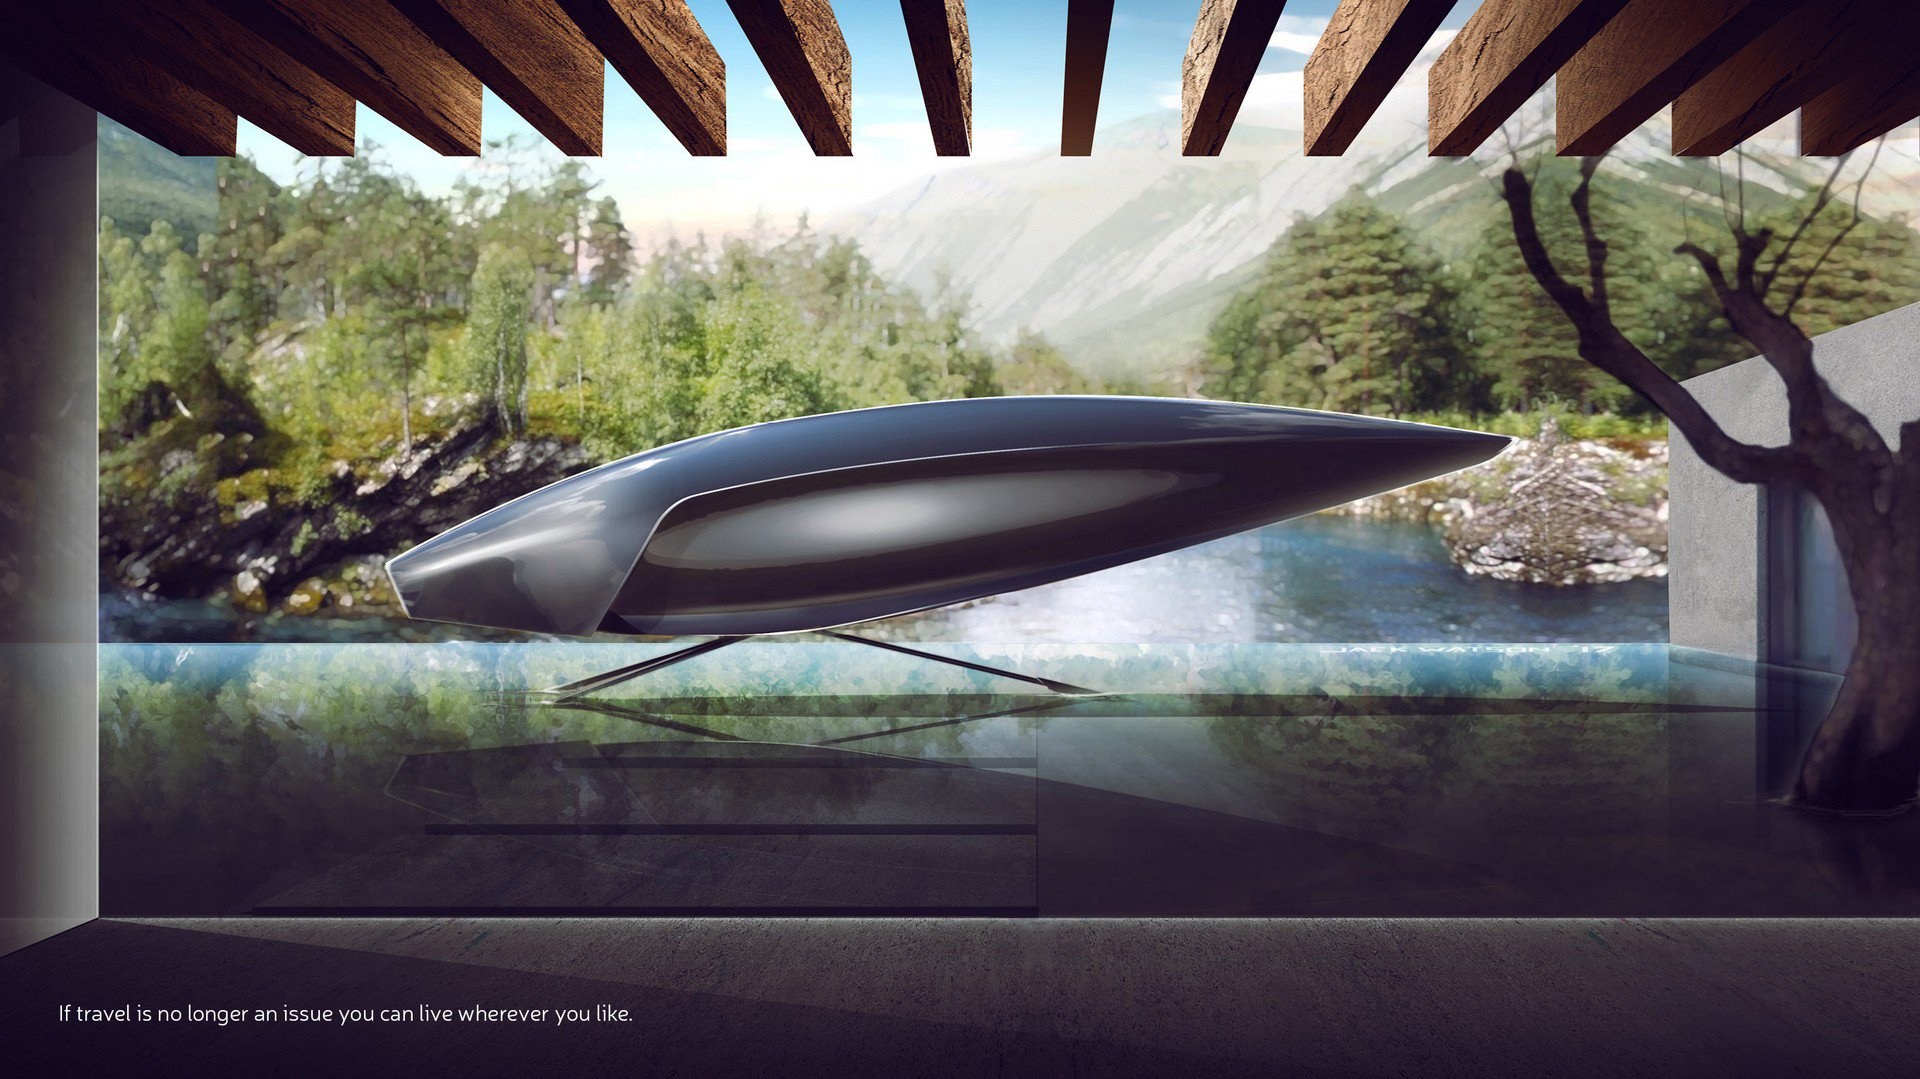 Bentley Future Cars 2050 (3)